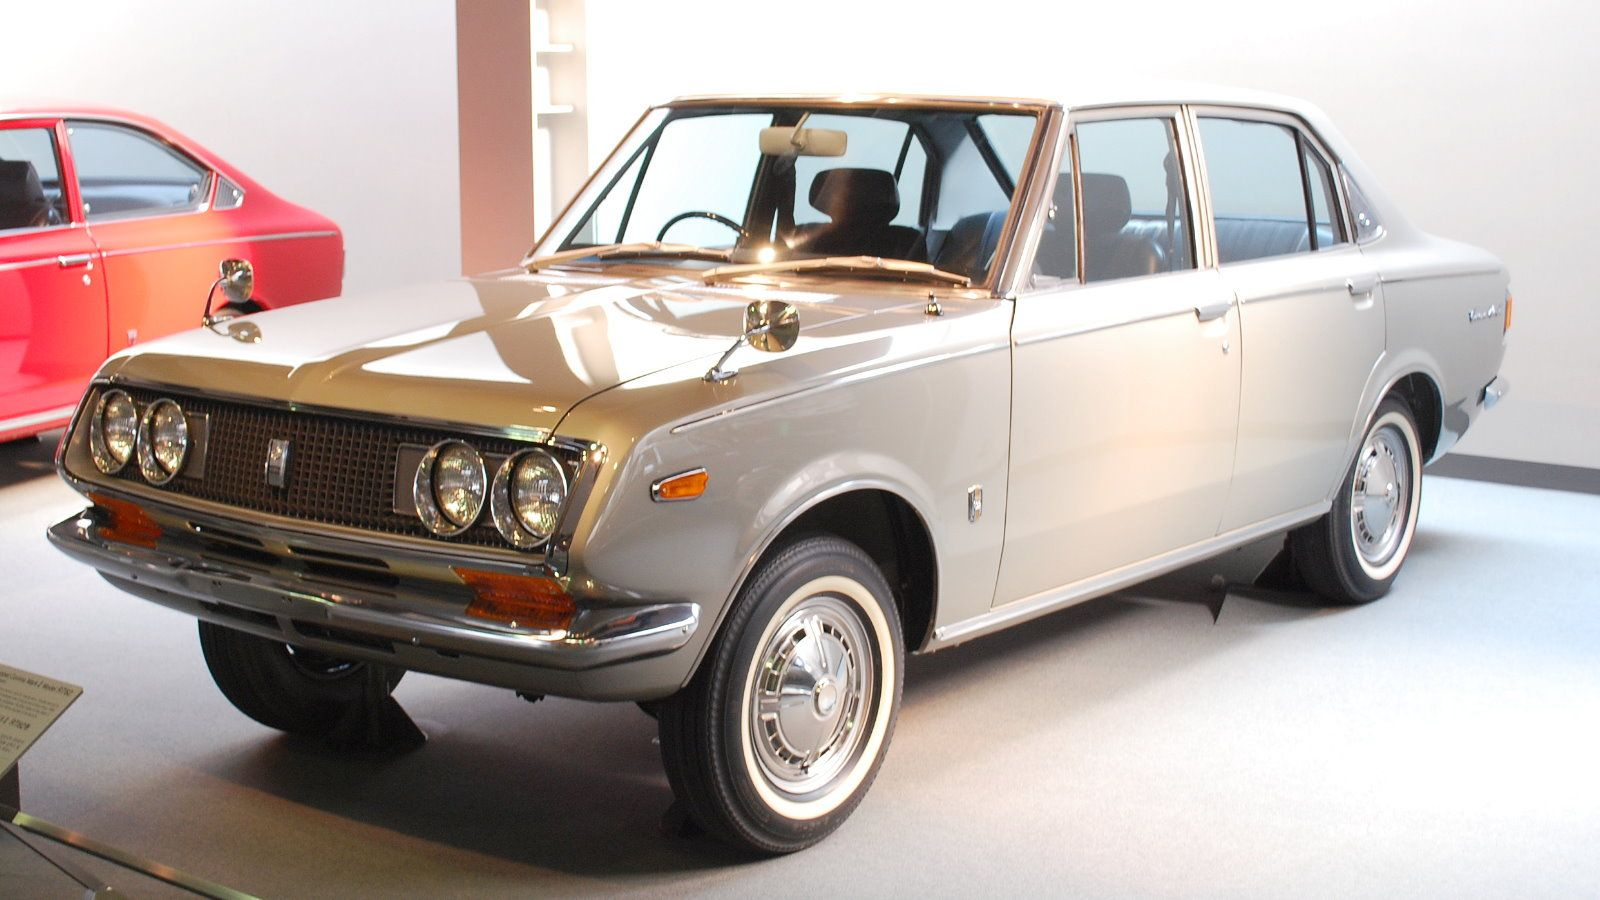 1968 Toyopet Corona - Toyota Classic | HD Cars Wallpapers | Old ...